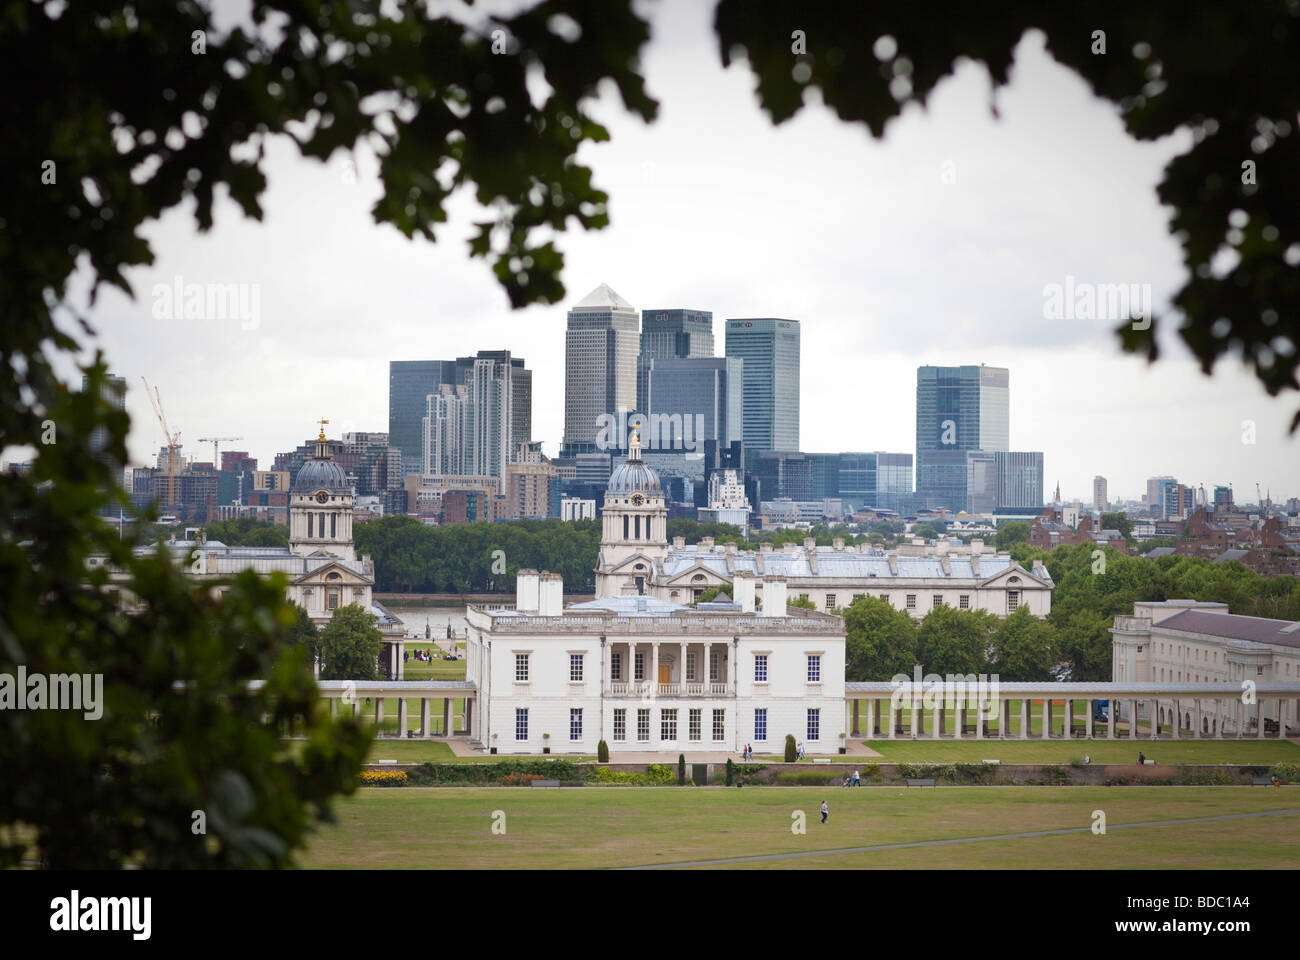 Canary wharf and Old Royal Naval College London London - Stock Image